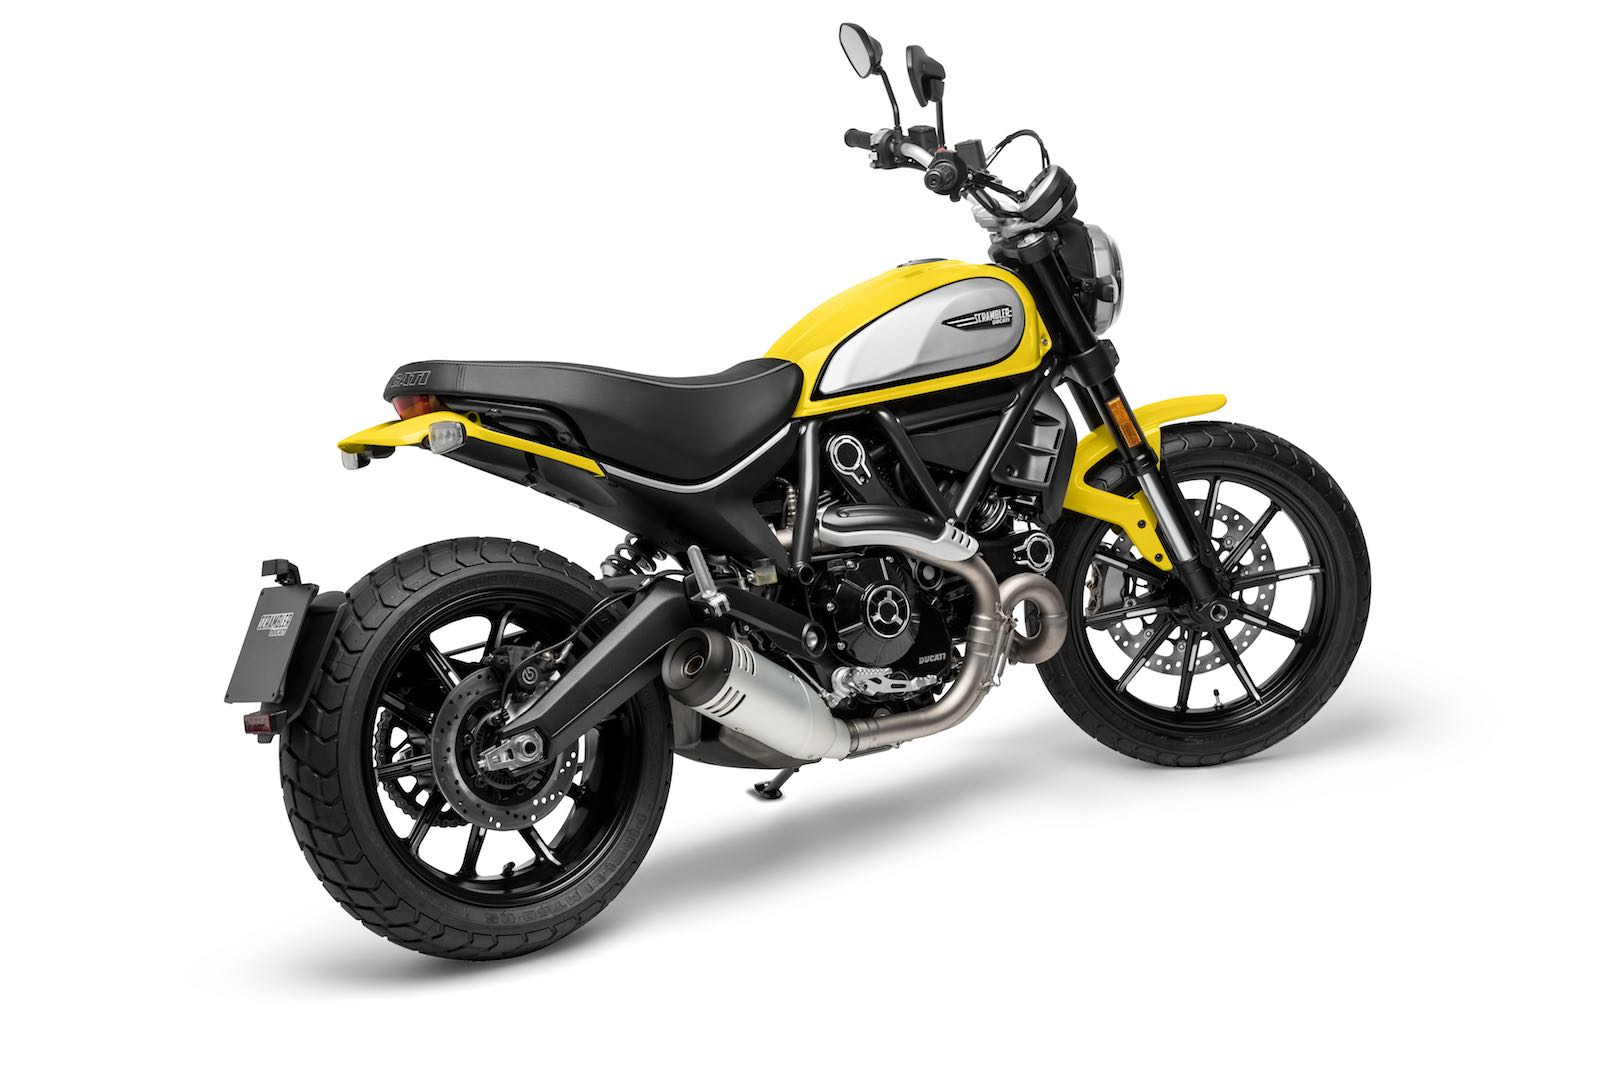 Astounding 2019 Ducati Scrambler Icon Updated Specs Photo Gallery Machost Co Dining Chair Design Ideas Machostcouk